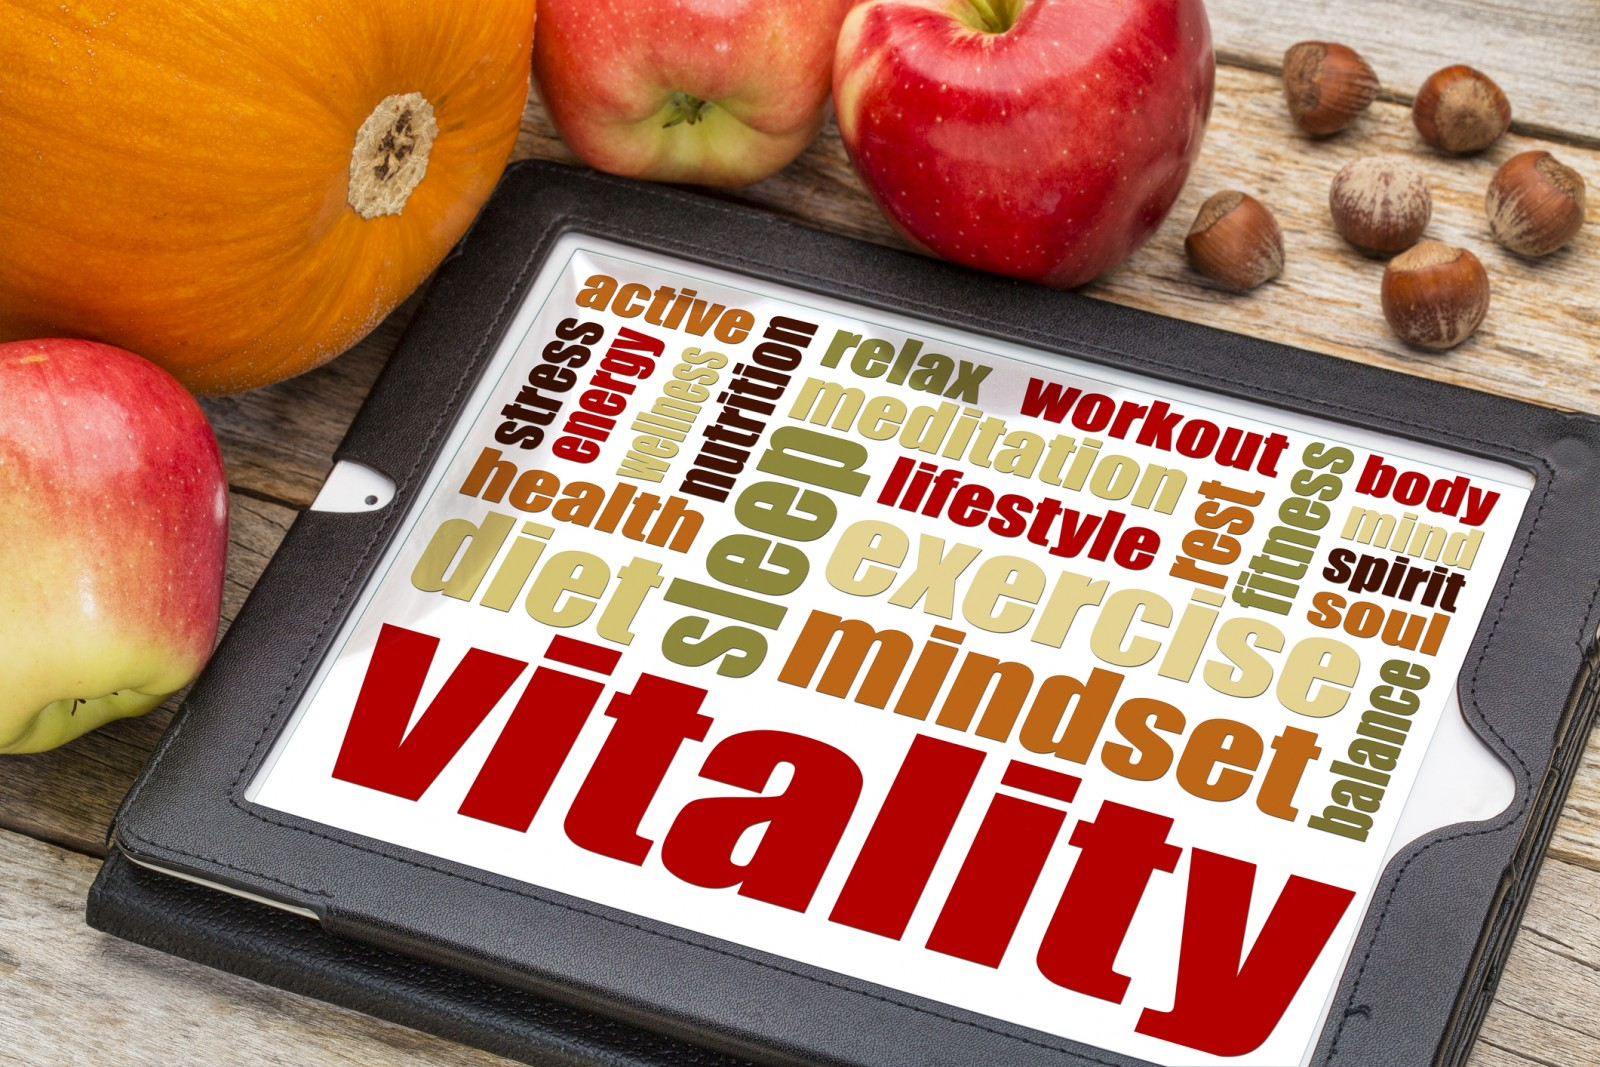 Preserving Your Personal Vitality. Antiaging and exercise